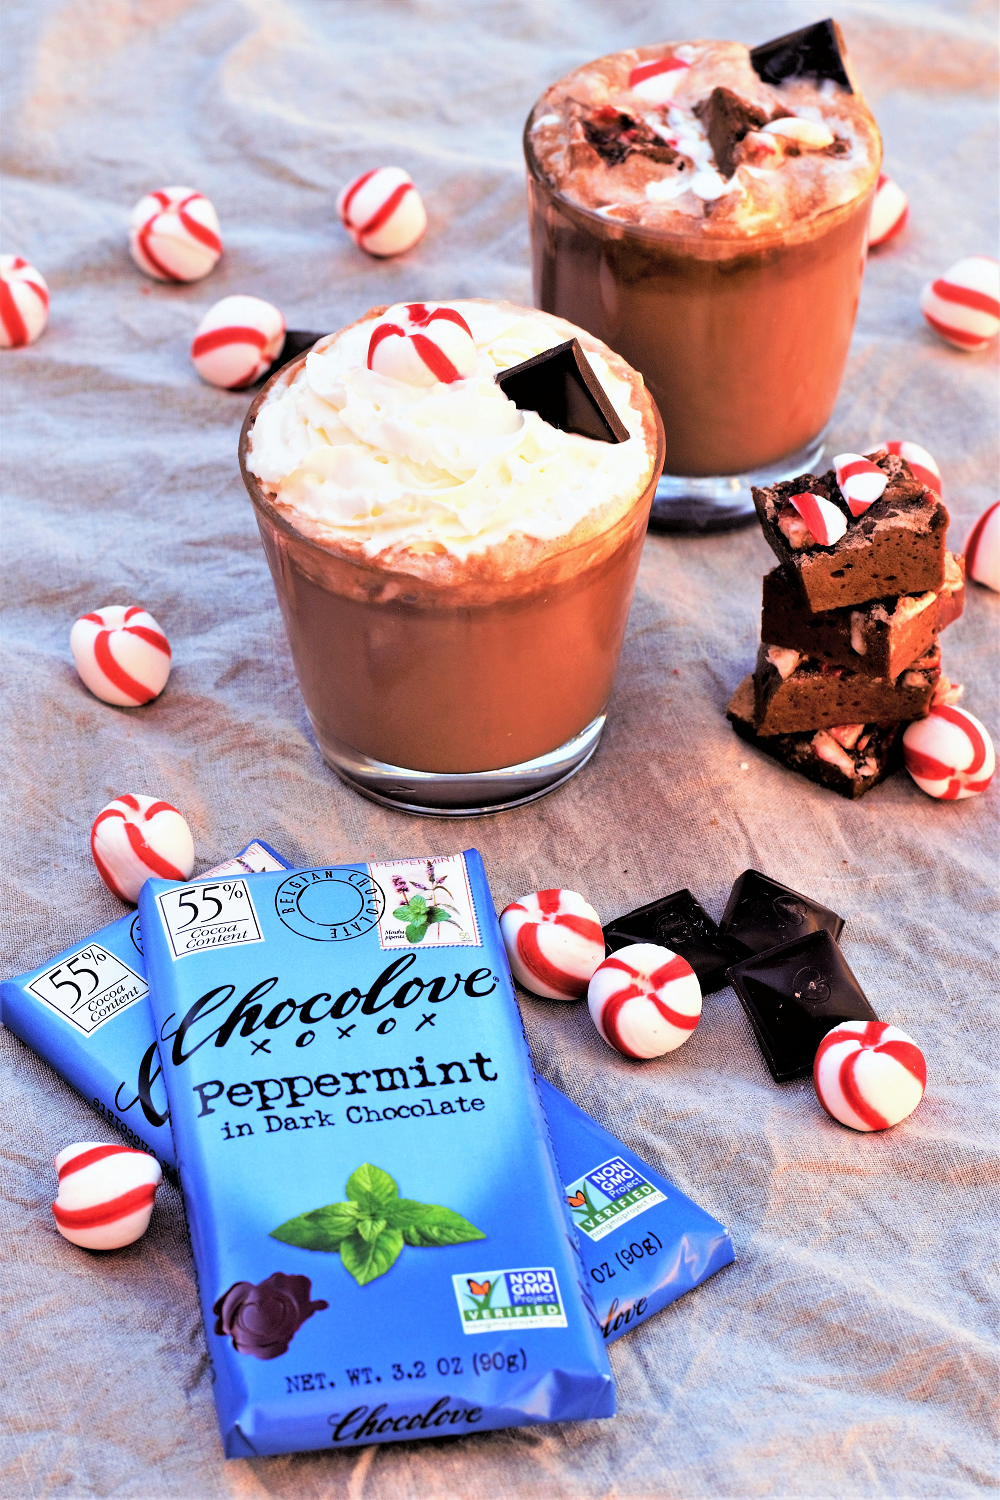 The richest velvety-smooth cocoa swirled with peppermint dark chocolate! Top with homemade peppermint chocolate marshmallows & watch the snowflakes fall.